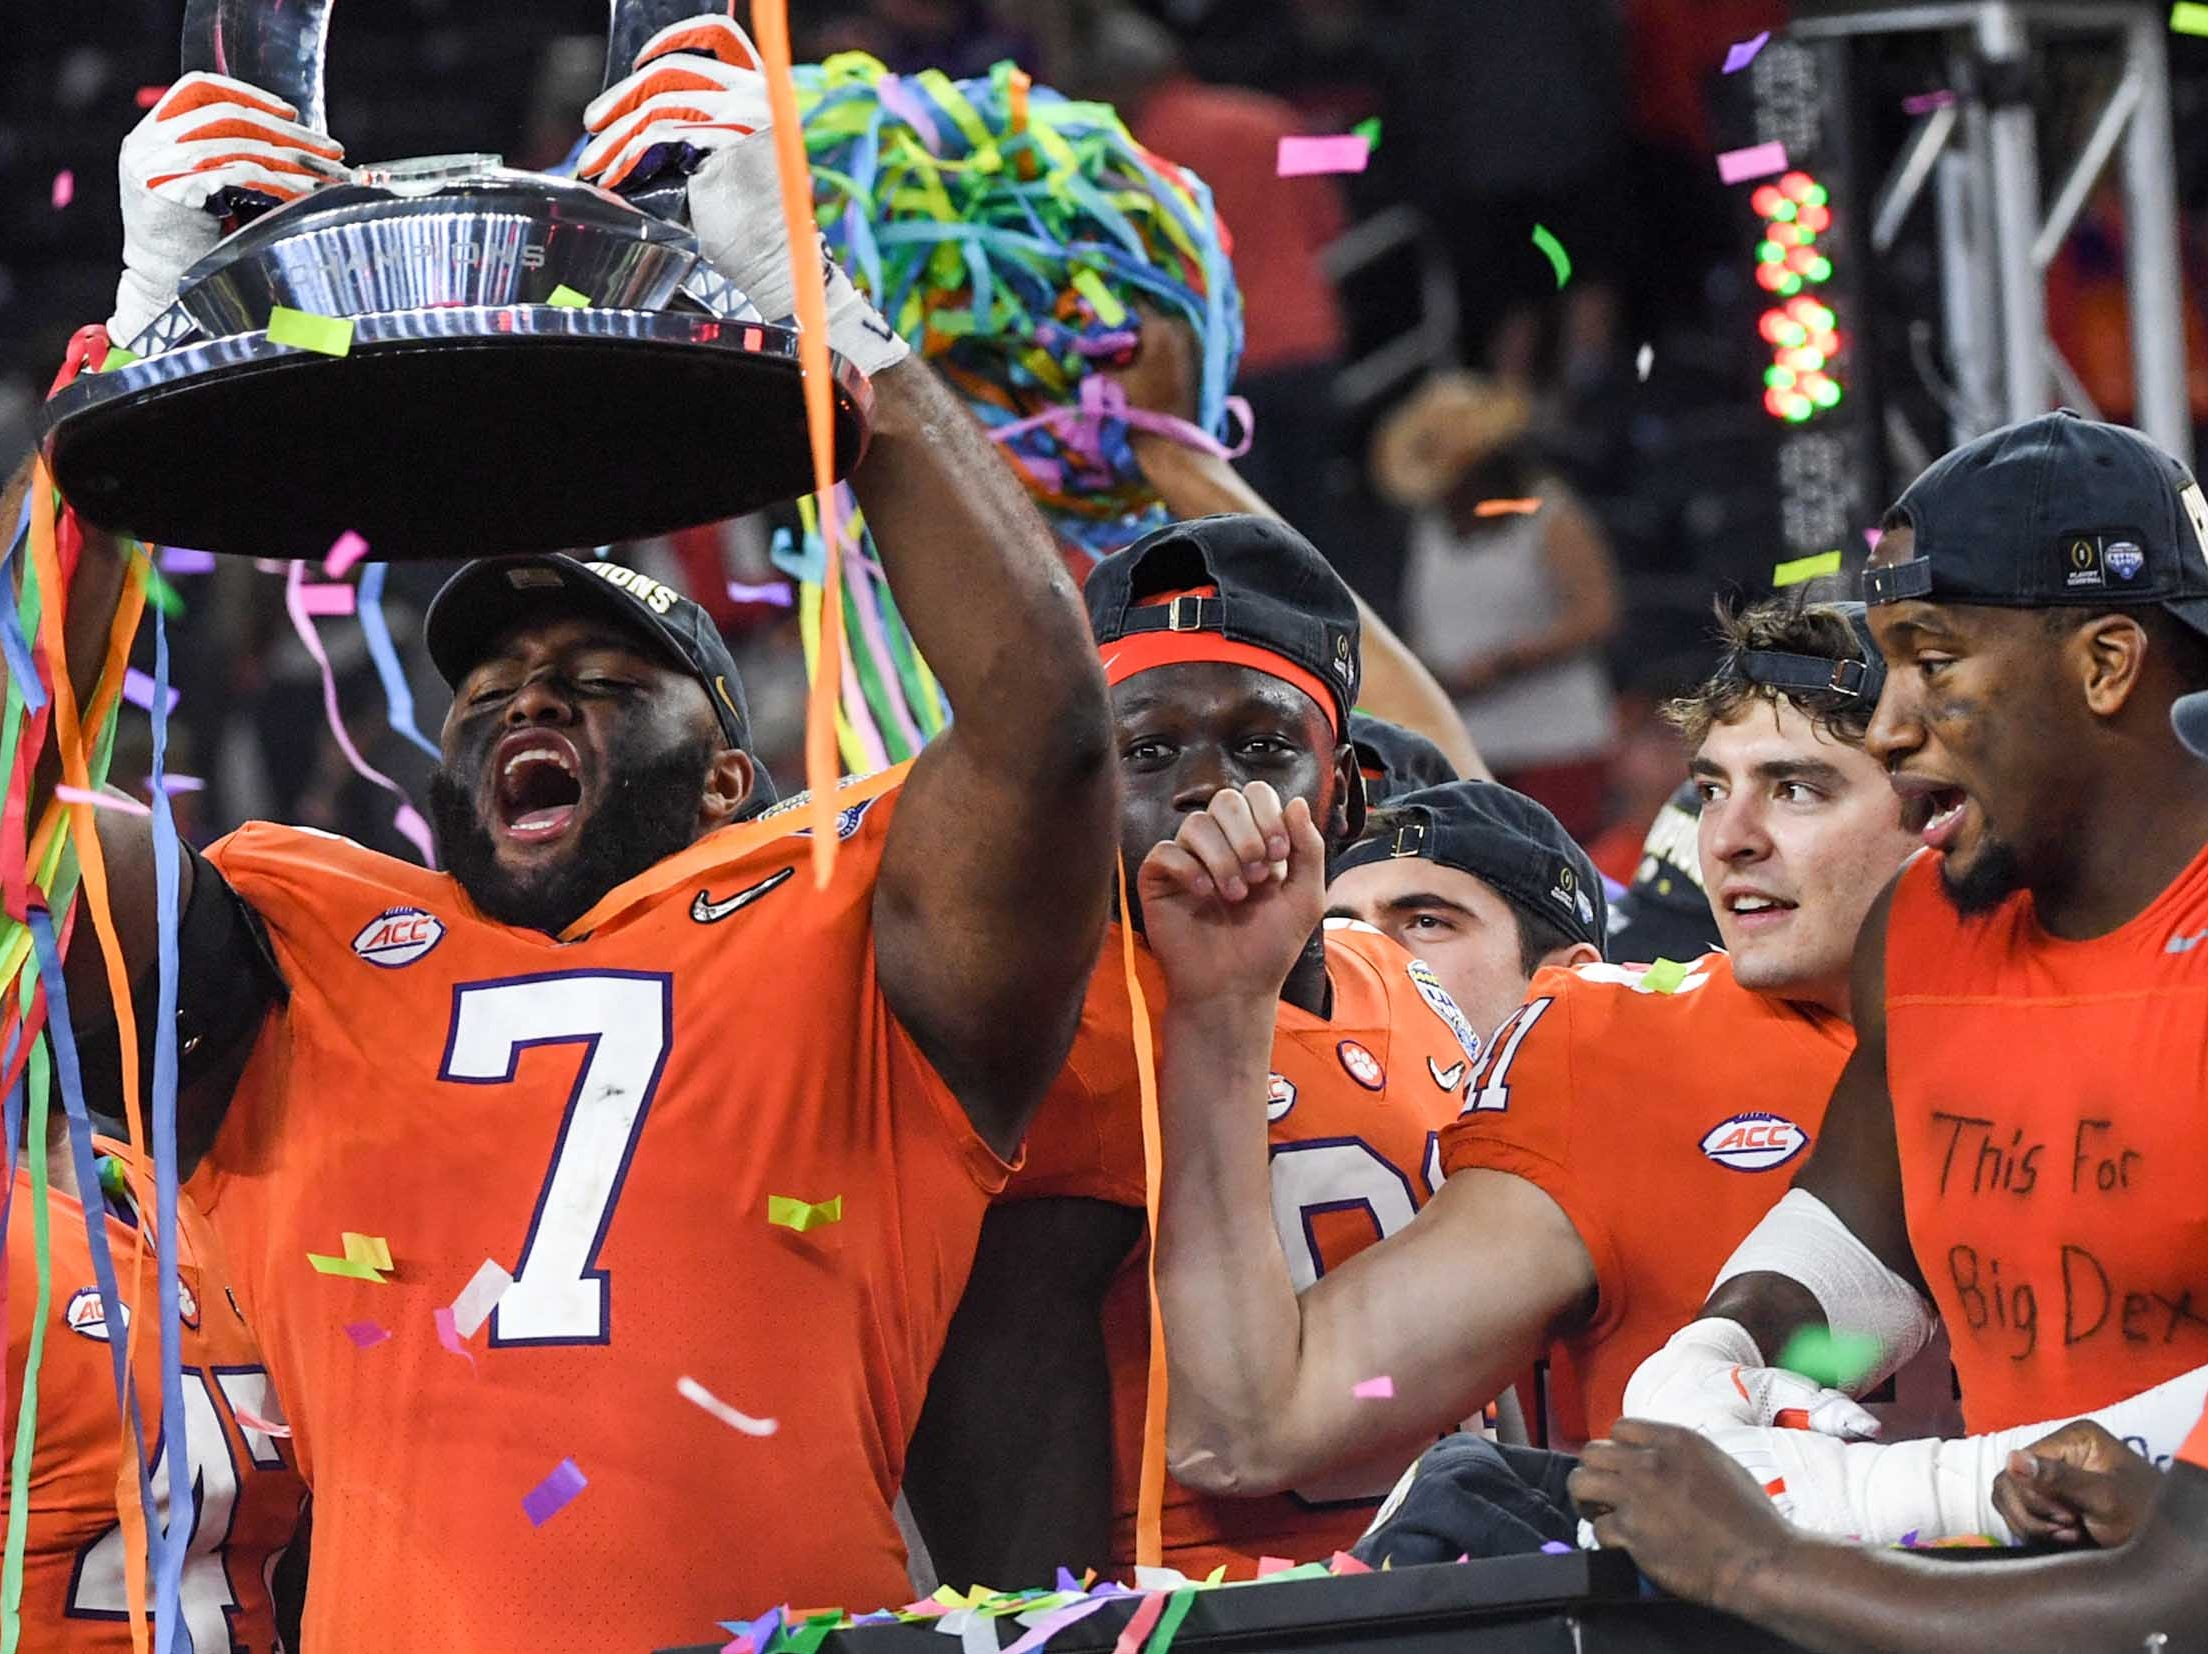 """Clemson defensive lineman Austin Bryant (7), left, holds up the Cotton Bowl trophy near defensive lineman Clelin Ferrell (99), right, wearing an undershirt with handwritten words """"This For Big Dex"""", after their 30-3 win over Notre Dame in the College Football Playoff Semifinal at the Goodyear Cotton Bowl Classic at AT&T Stadium in Arlington, Texas Saturday, December 29, 2018."""